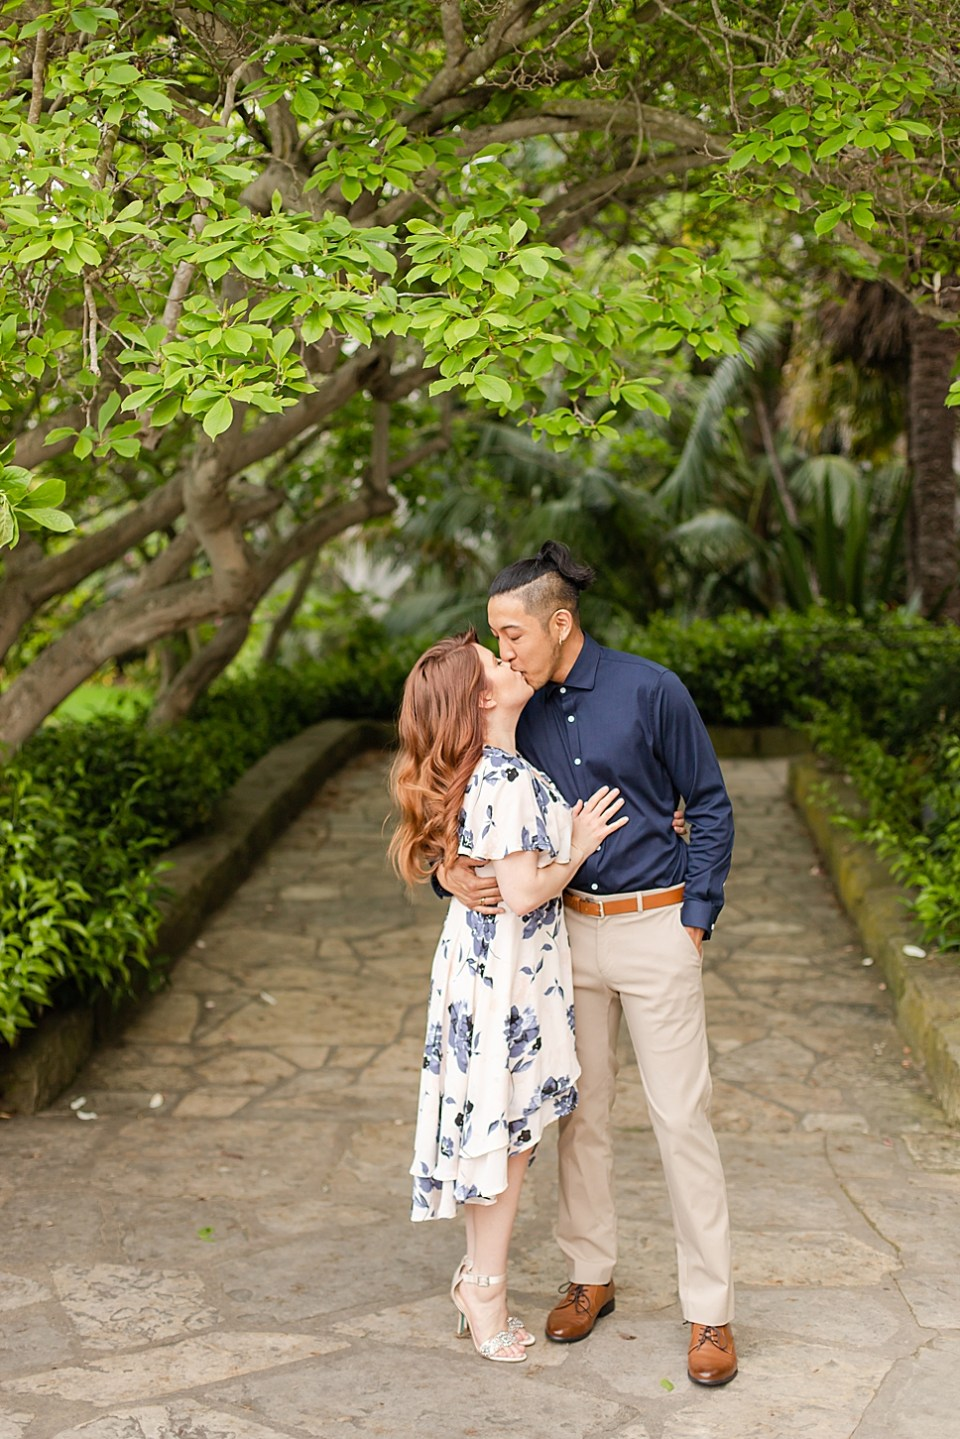 Danielle & Ray under some green trees at the Santa Barbara Courthouse in Santa Barbara, California.